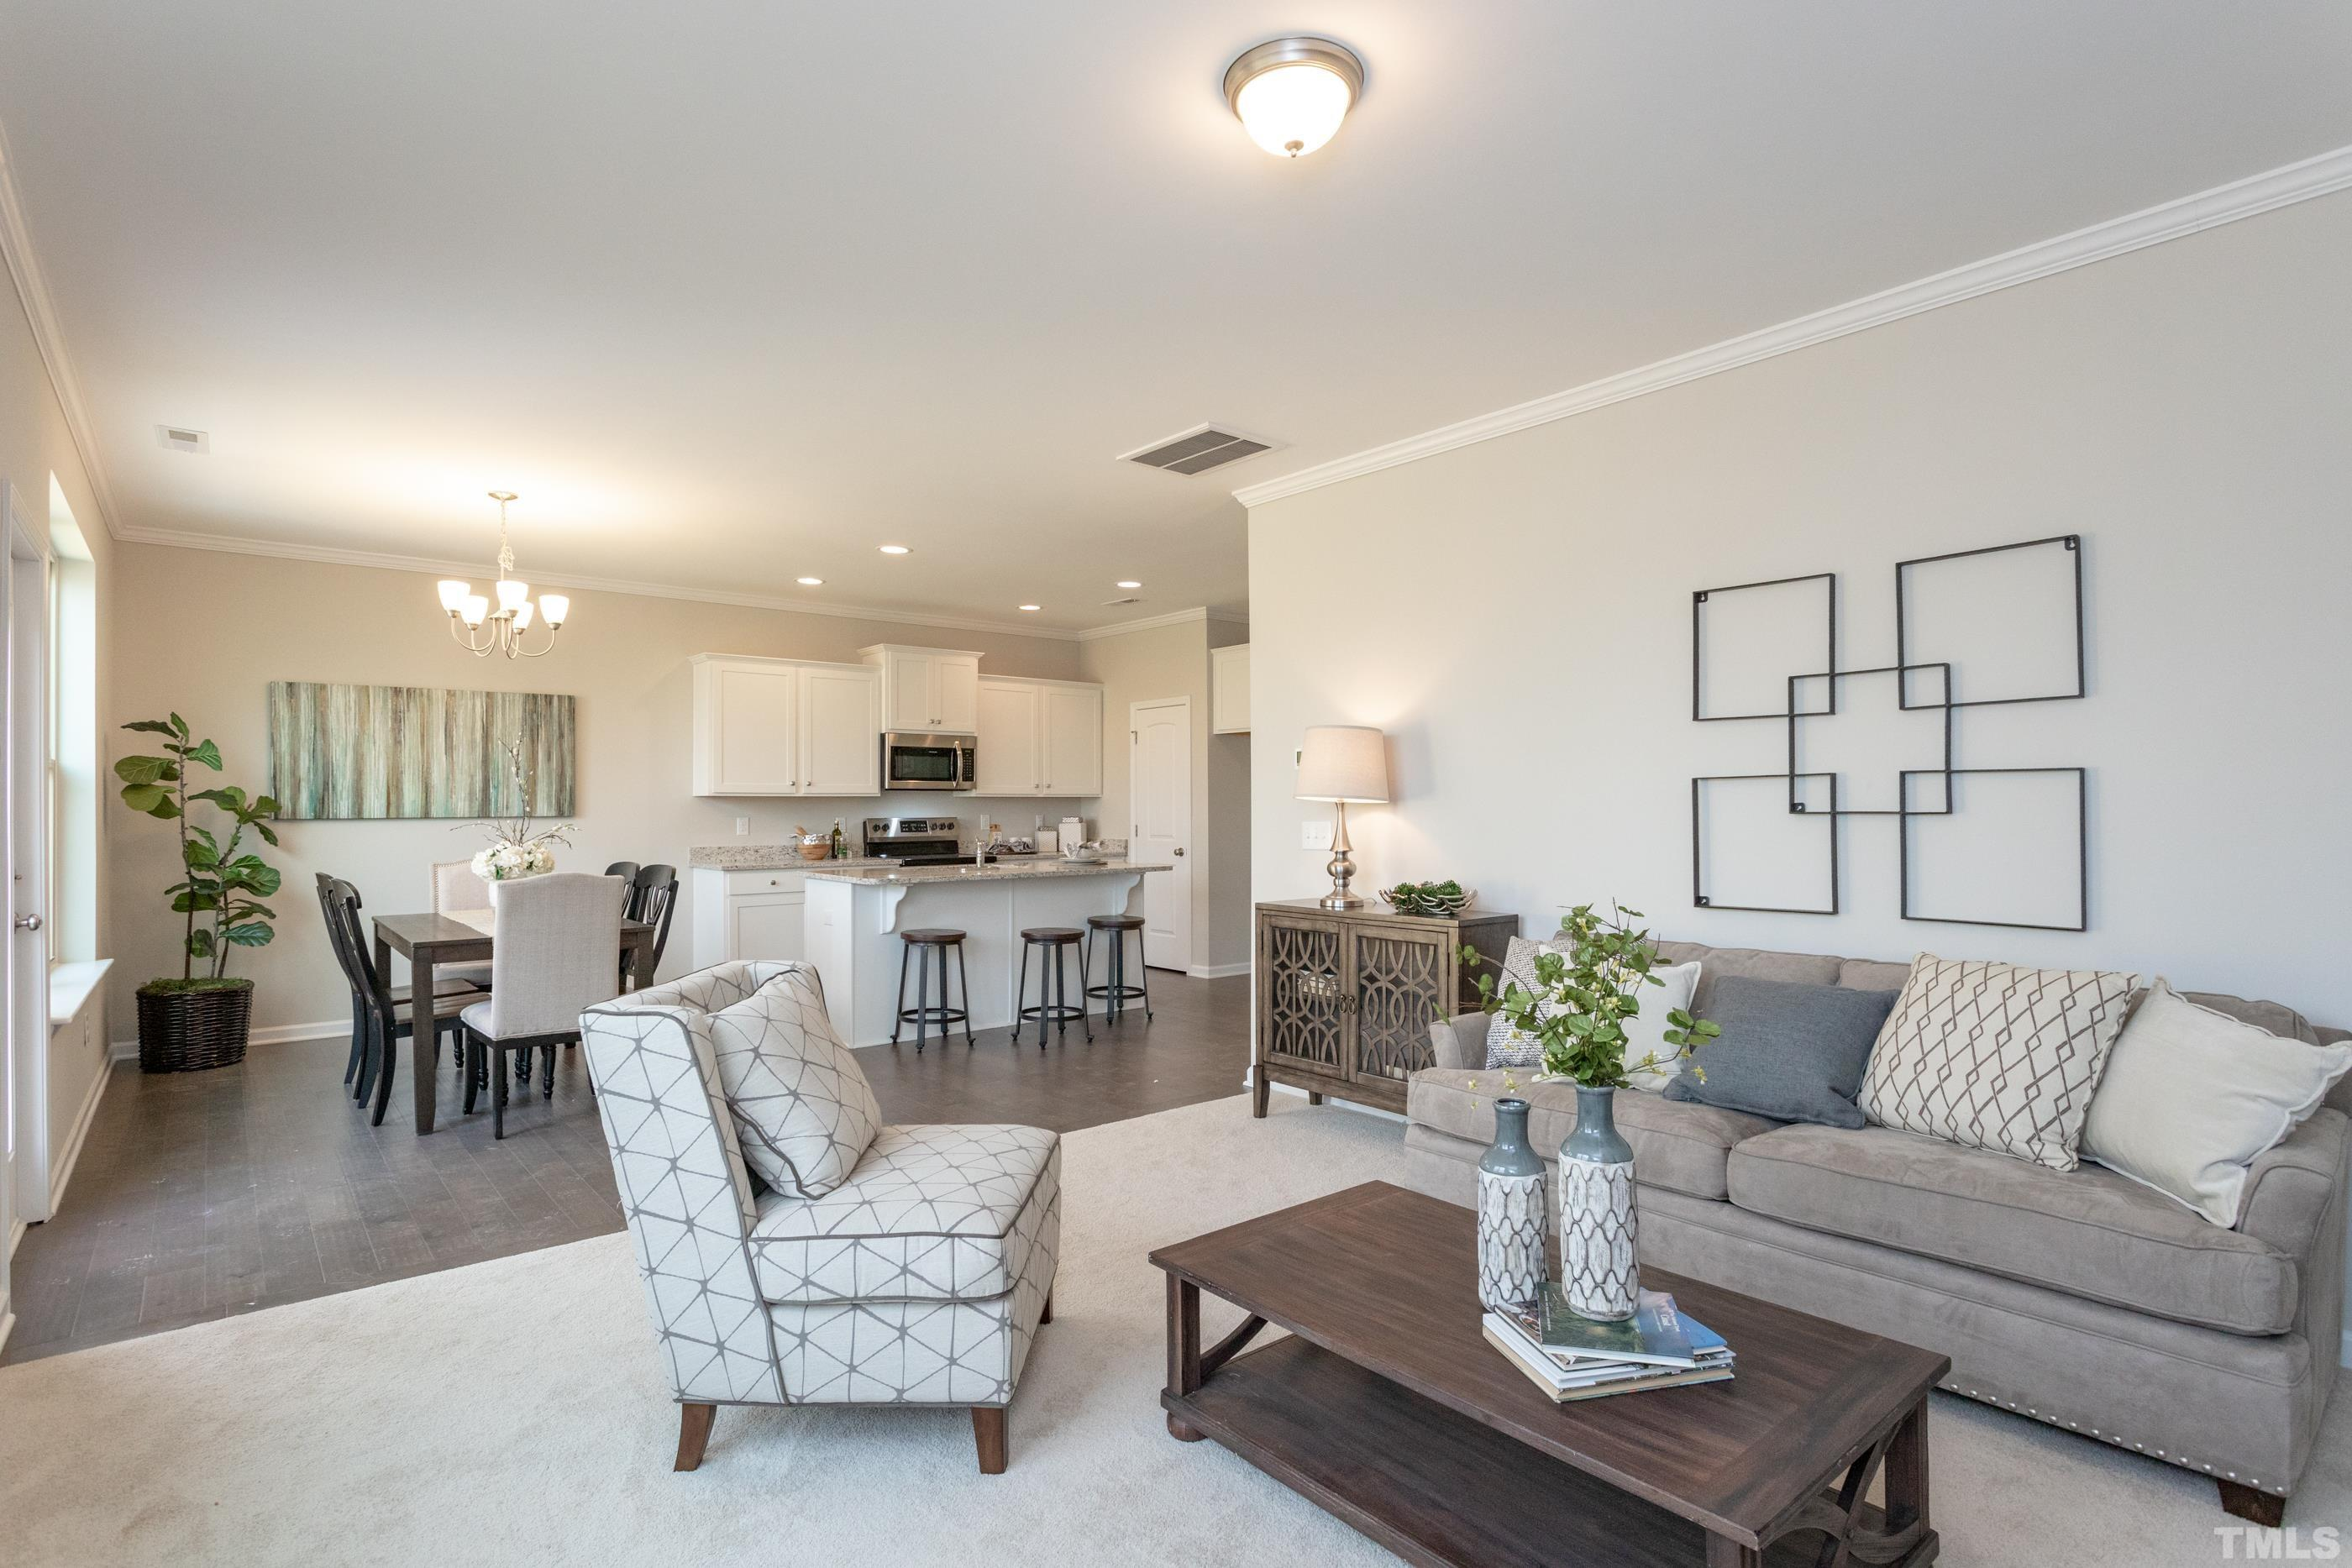 Images of model home, fits and finishes vary by community.